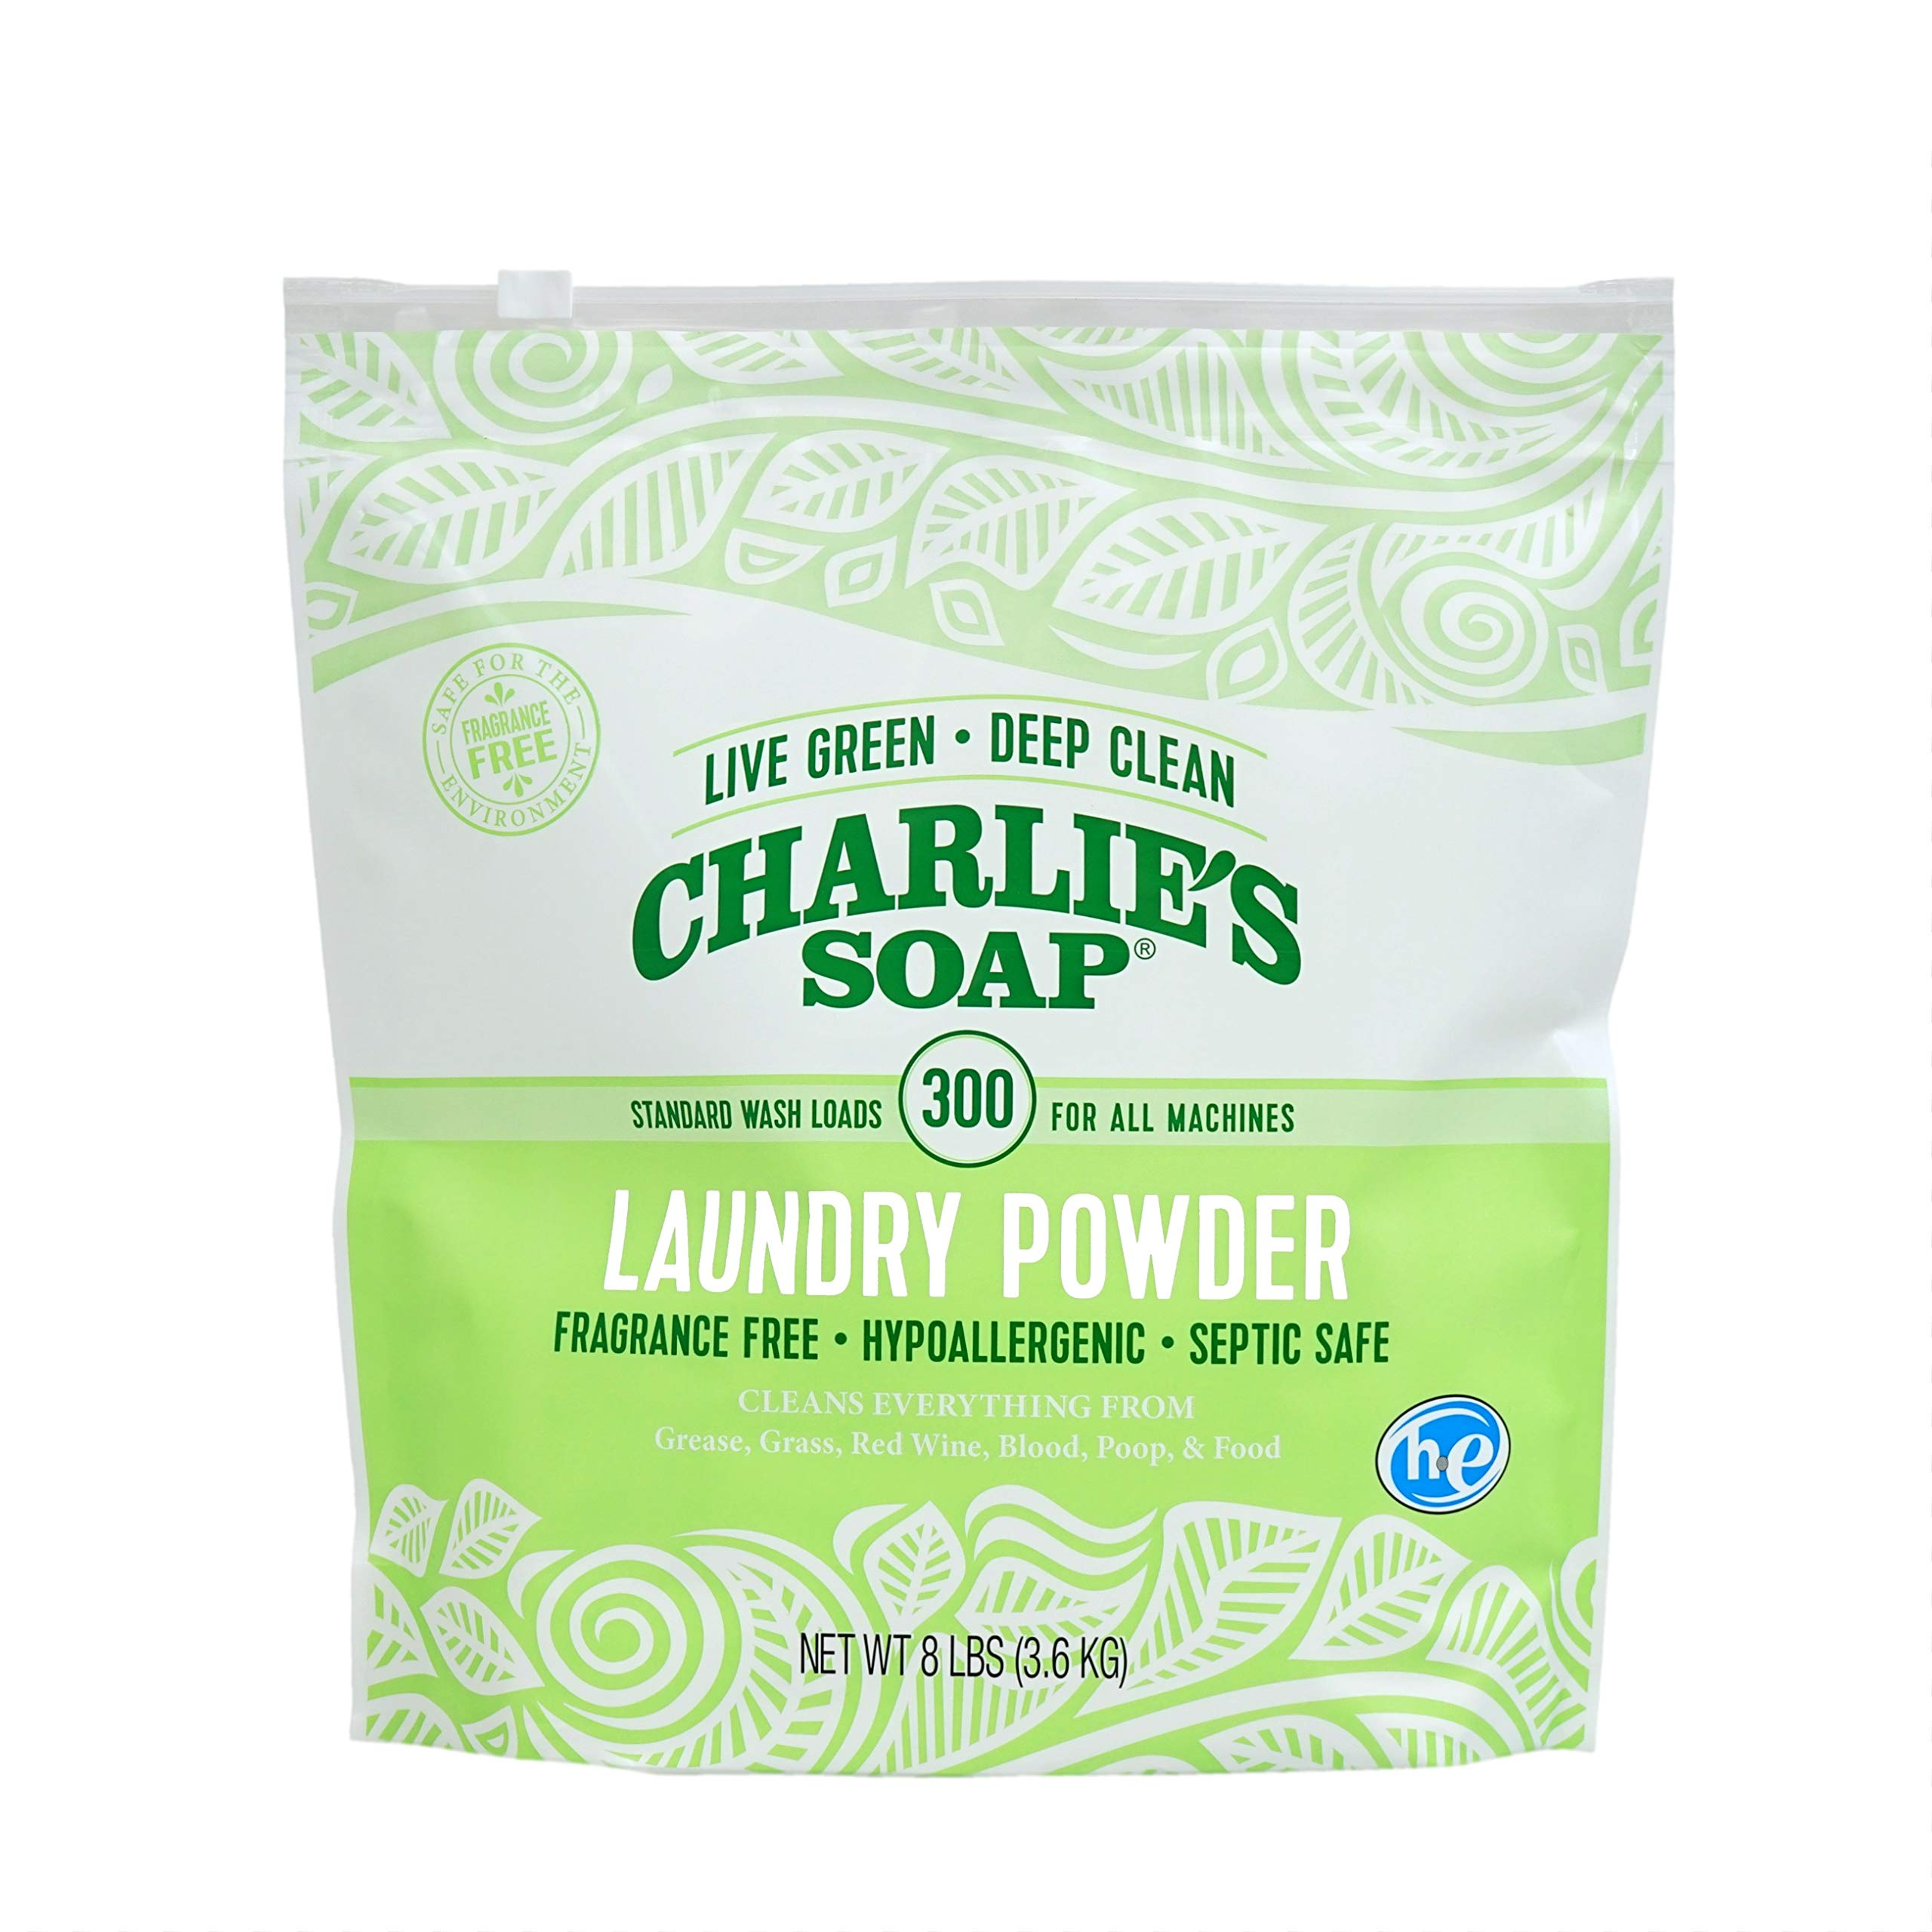 Charlie's Soap - Fragrance Free Powder Laundry Detergent - 300 Loads (8 lbs, 1 Pack) by Charlie's Soap (Image #3)